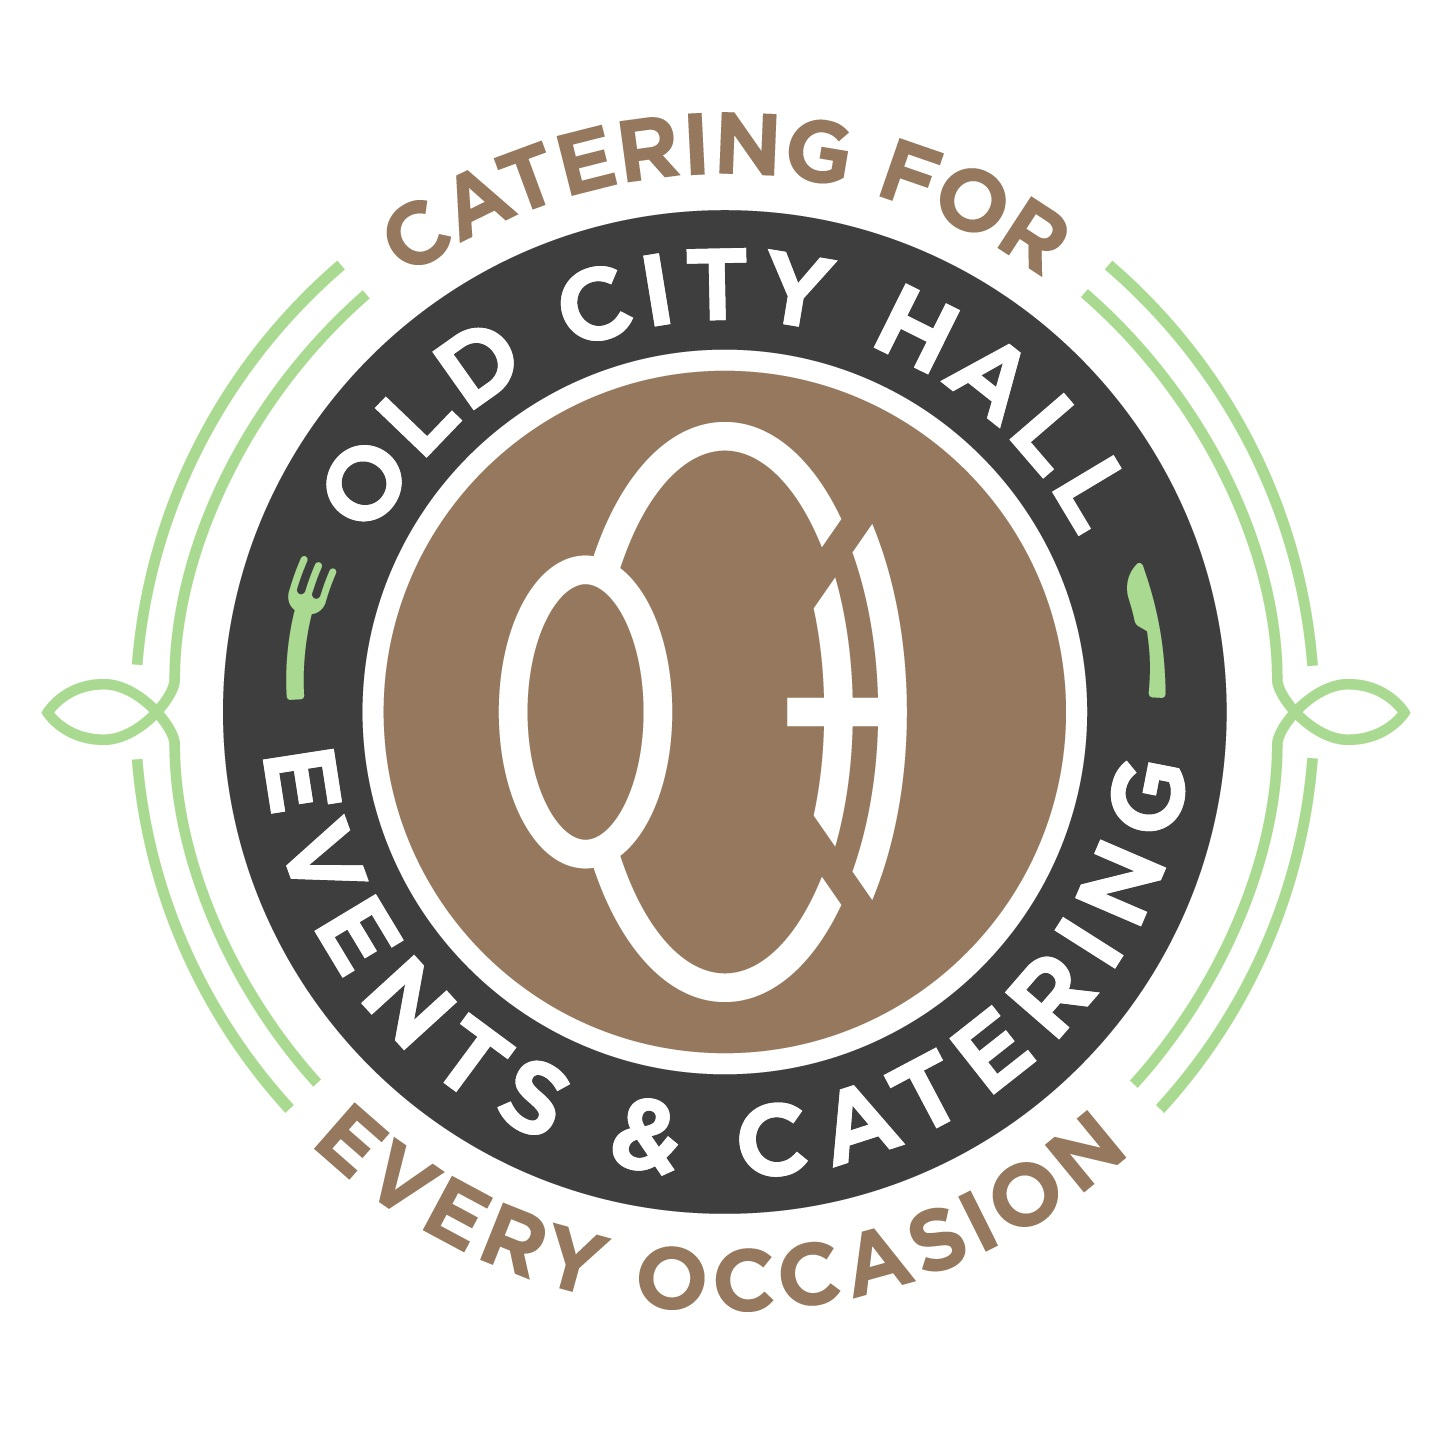 Old City Hall Catering & Events